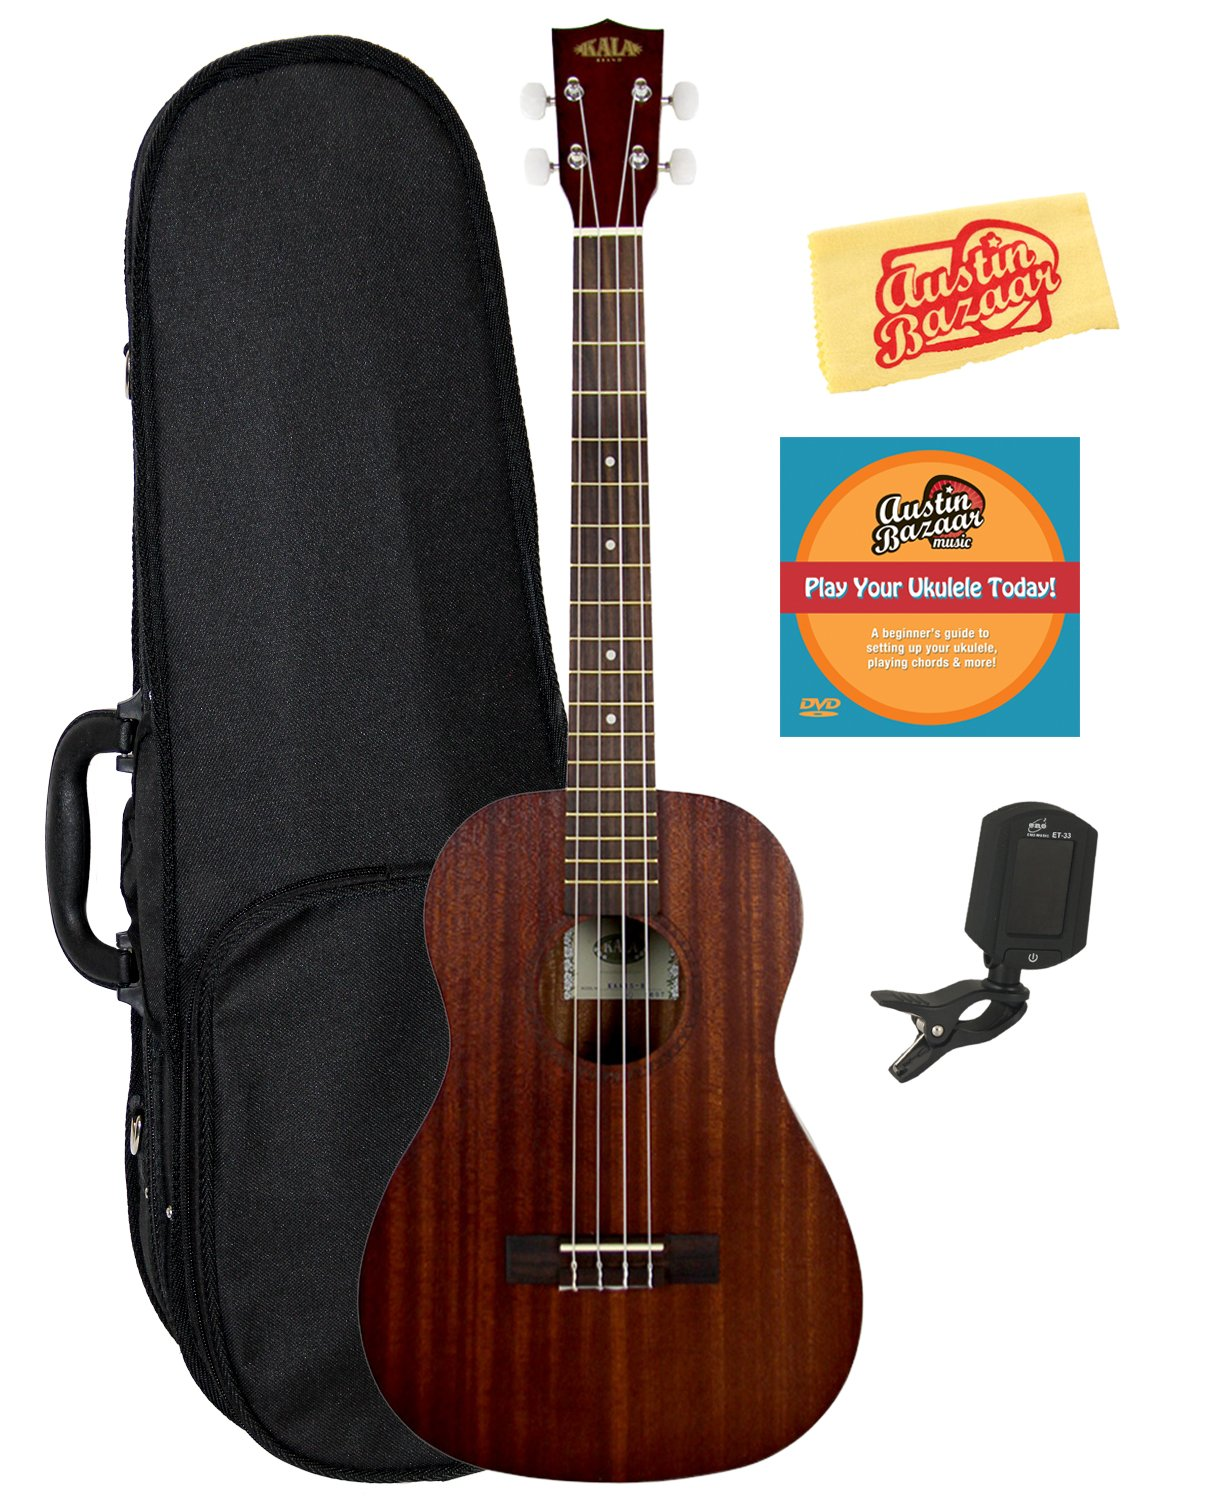 Kala KAA-15B Satin Mahogany Baritone Ukulele Bundle with Hard Case, Tuner, Austin Bazaar Instructional DVD, and Polishing Cloth